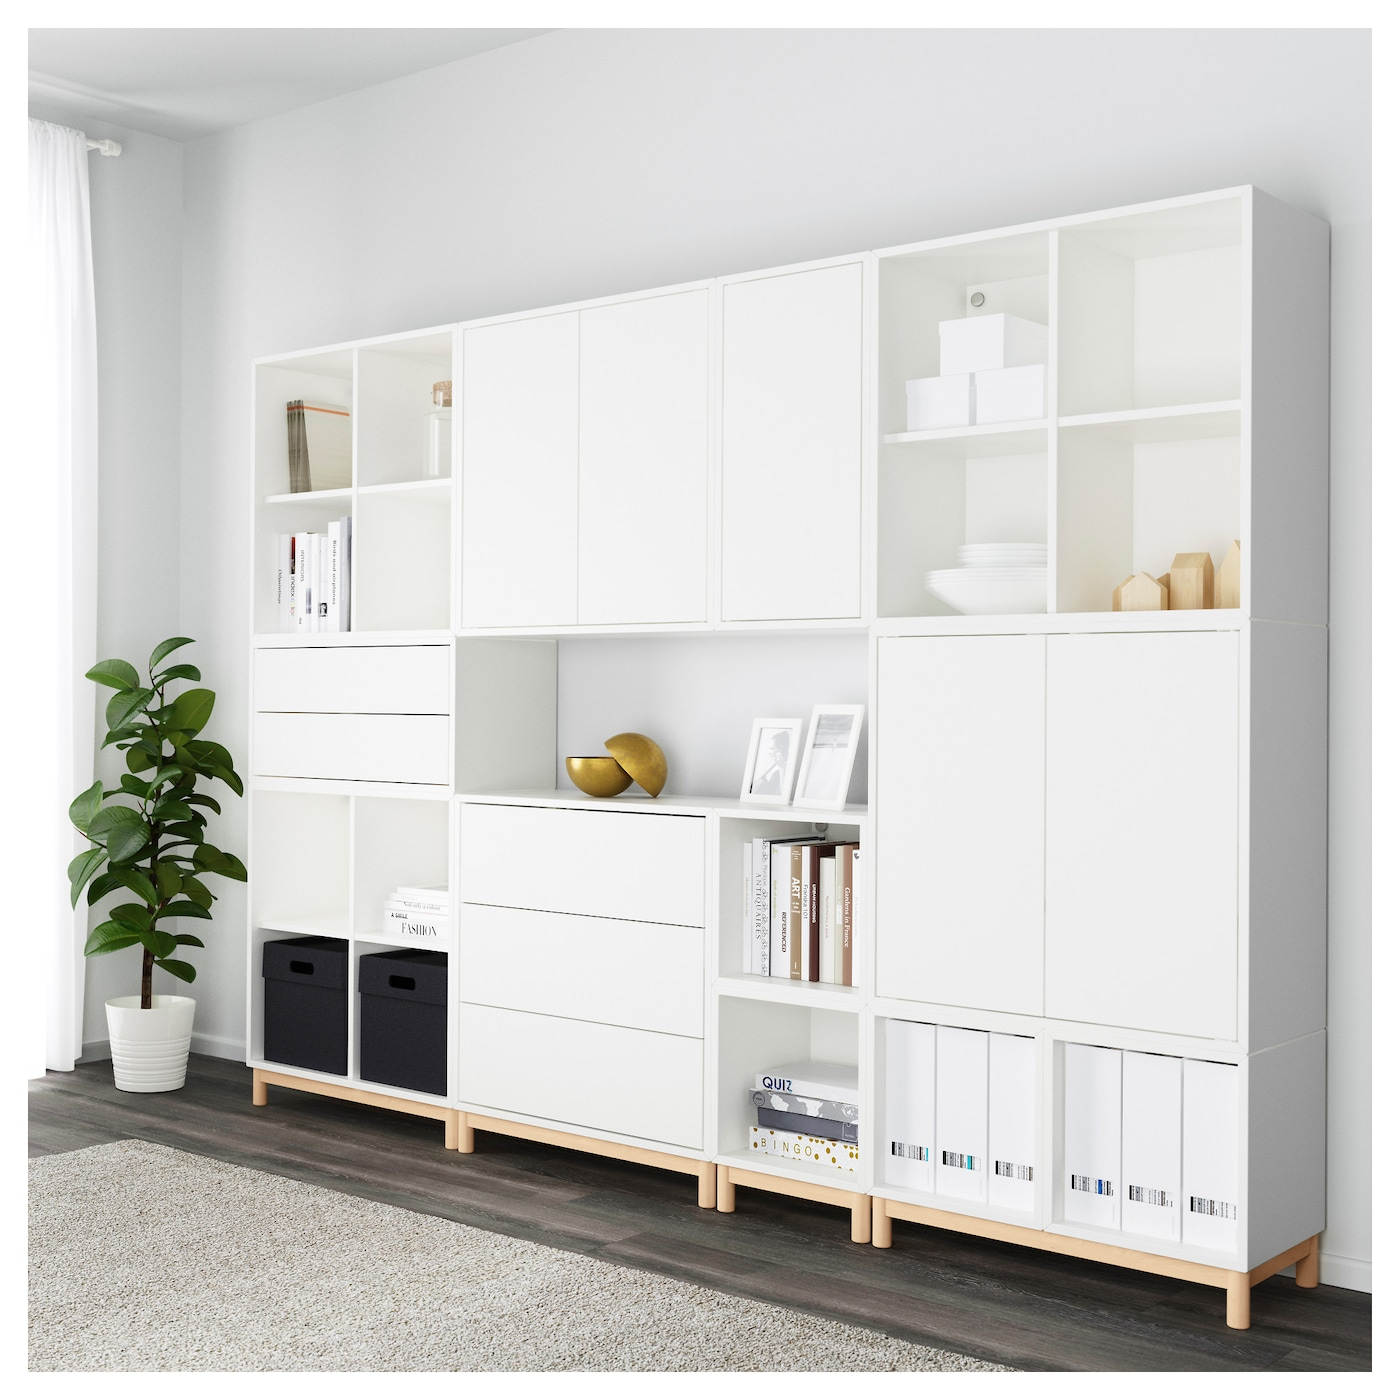 eket cabinet combination with legs white 245 x 35 x 185 cm. Black Bedroom Furniture Sets. Home Design Ideas